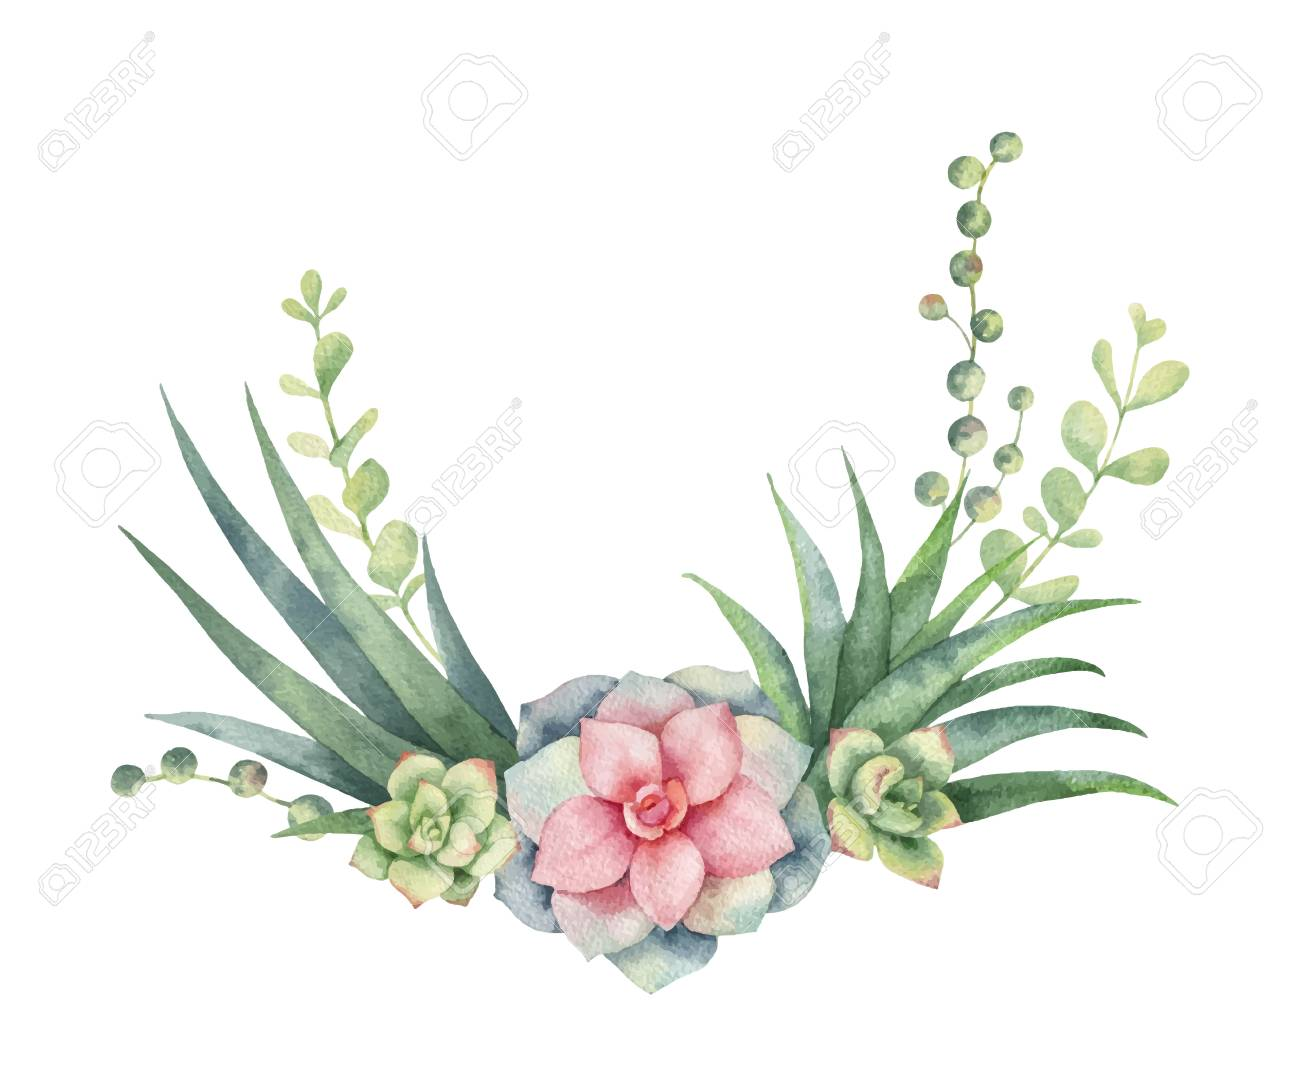 Watercolor Vector Wreath Of Cacti And Succulent Plants Isolated Royalty Free Cliparts Vectors And Stock Illustration Image 98698615